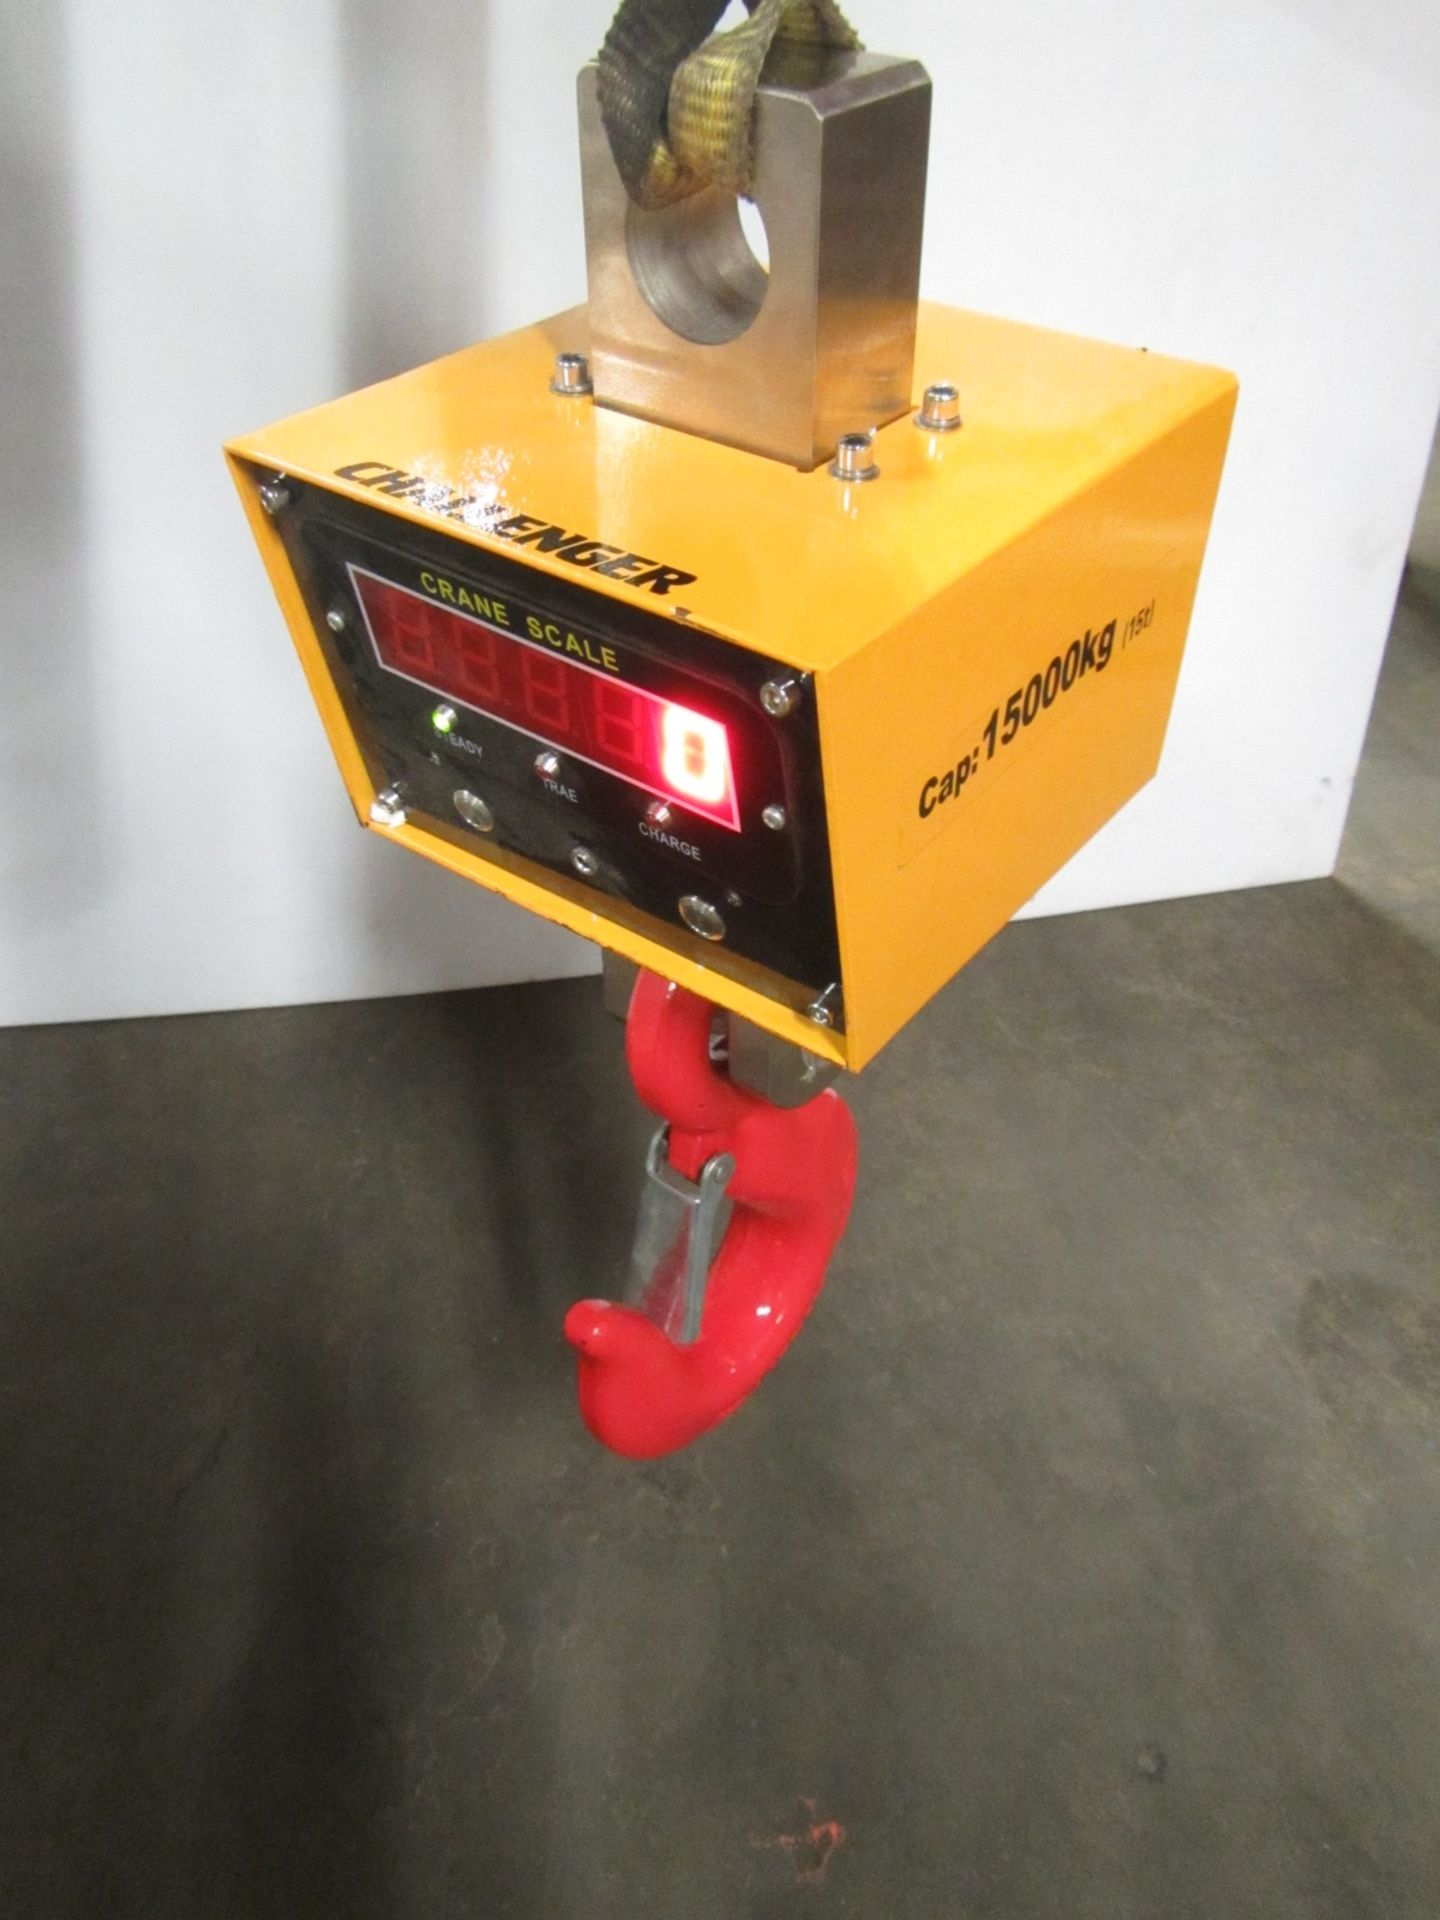 Hanging MINT Digital Crane Scale 15 ton Capacity 15000kg - complete with remote control and charging